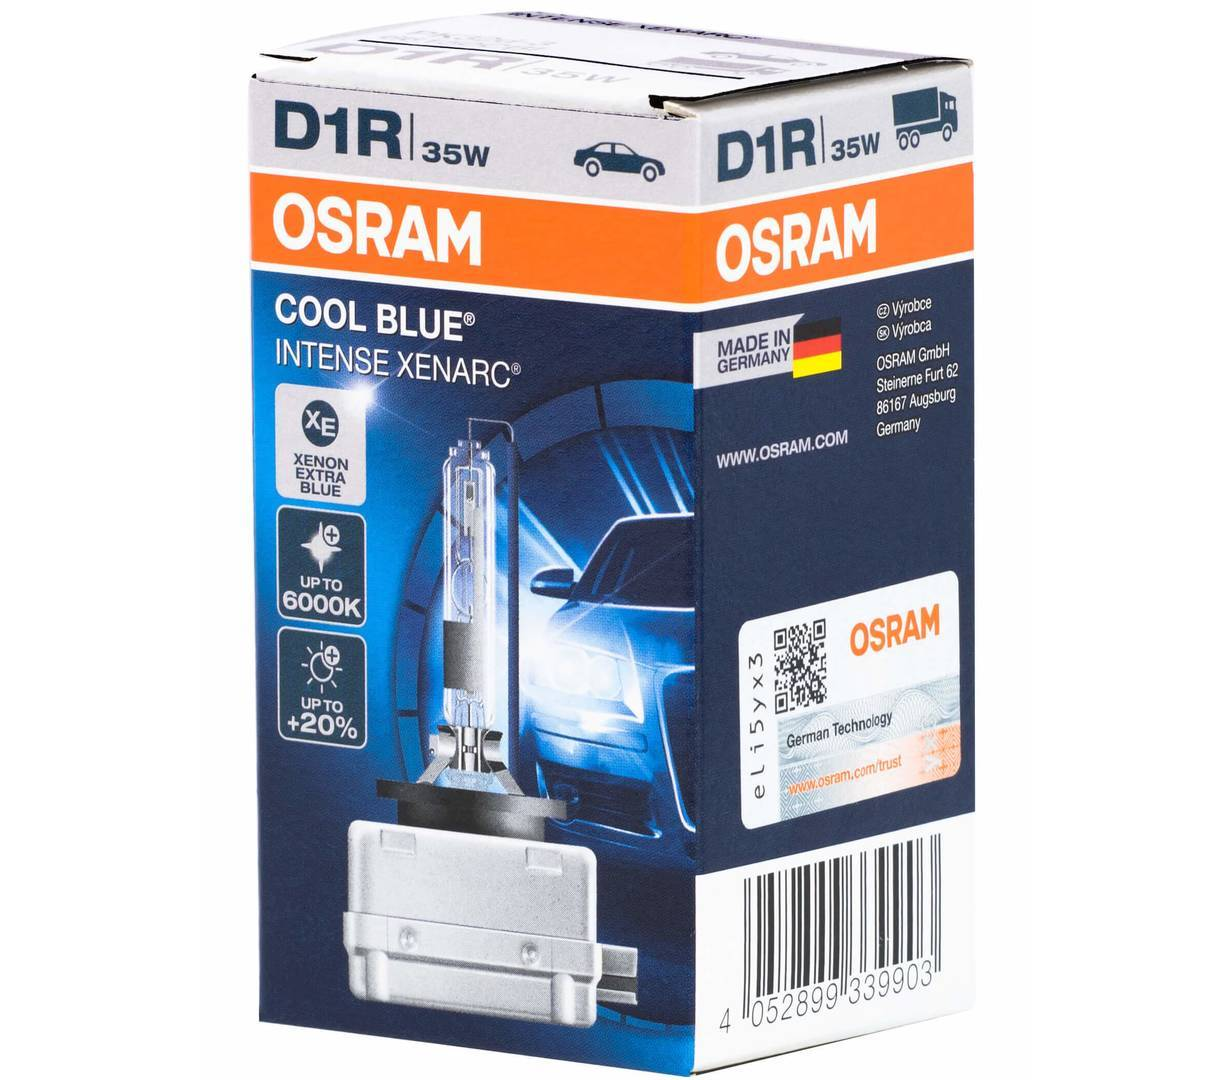 Ксеноновая лампа OSRAM D1R XENARC COOL BLUE INTENSE